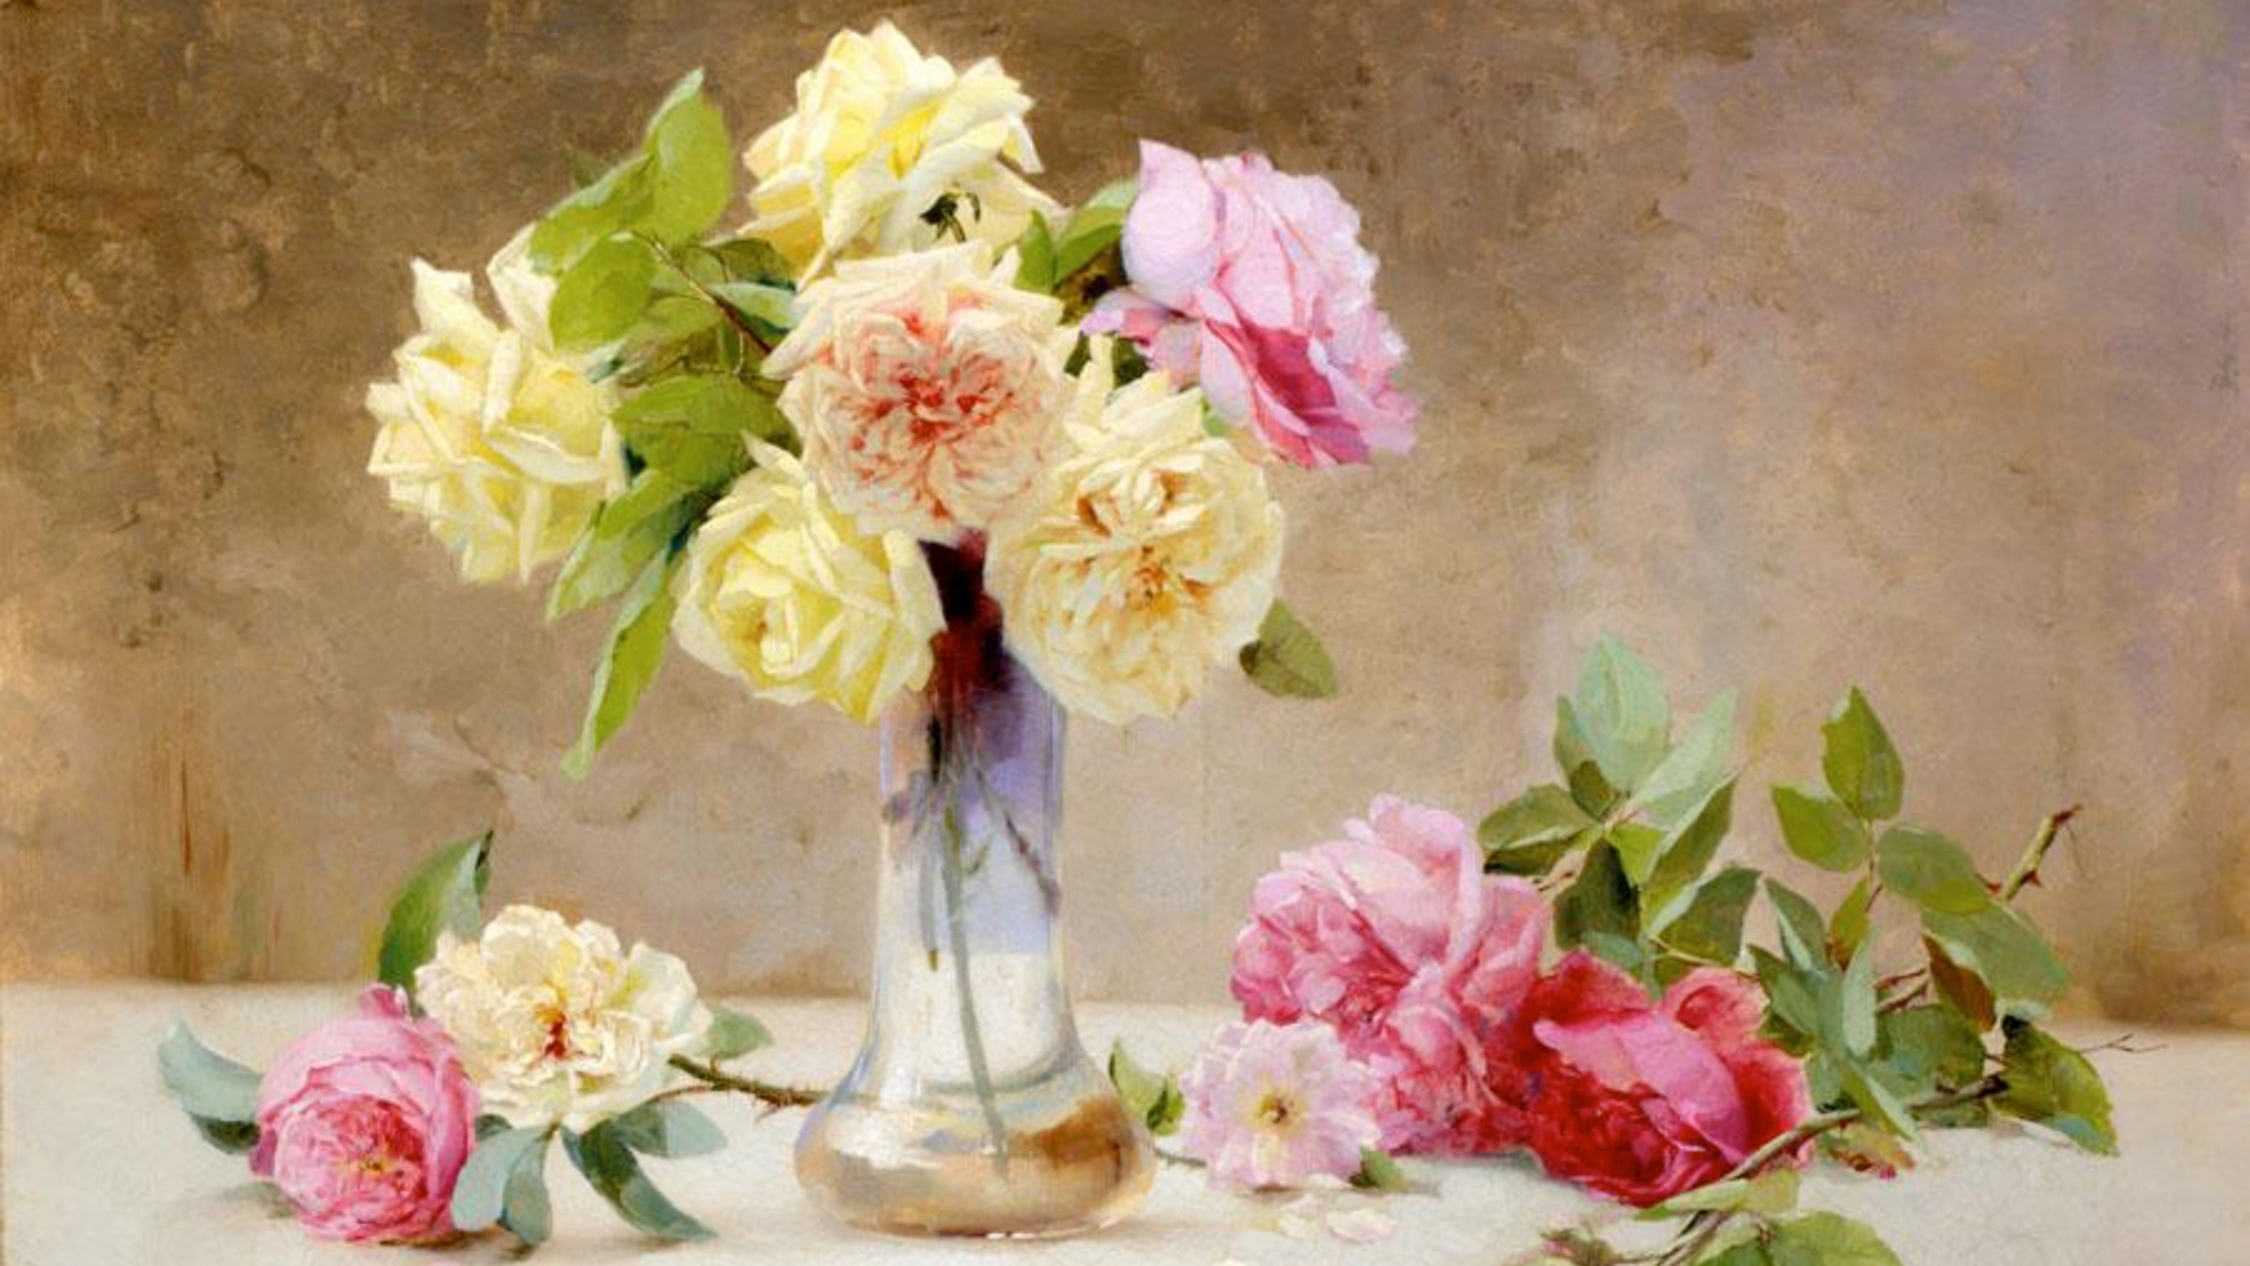 Museums across the world are sending each other virtual bouquets